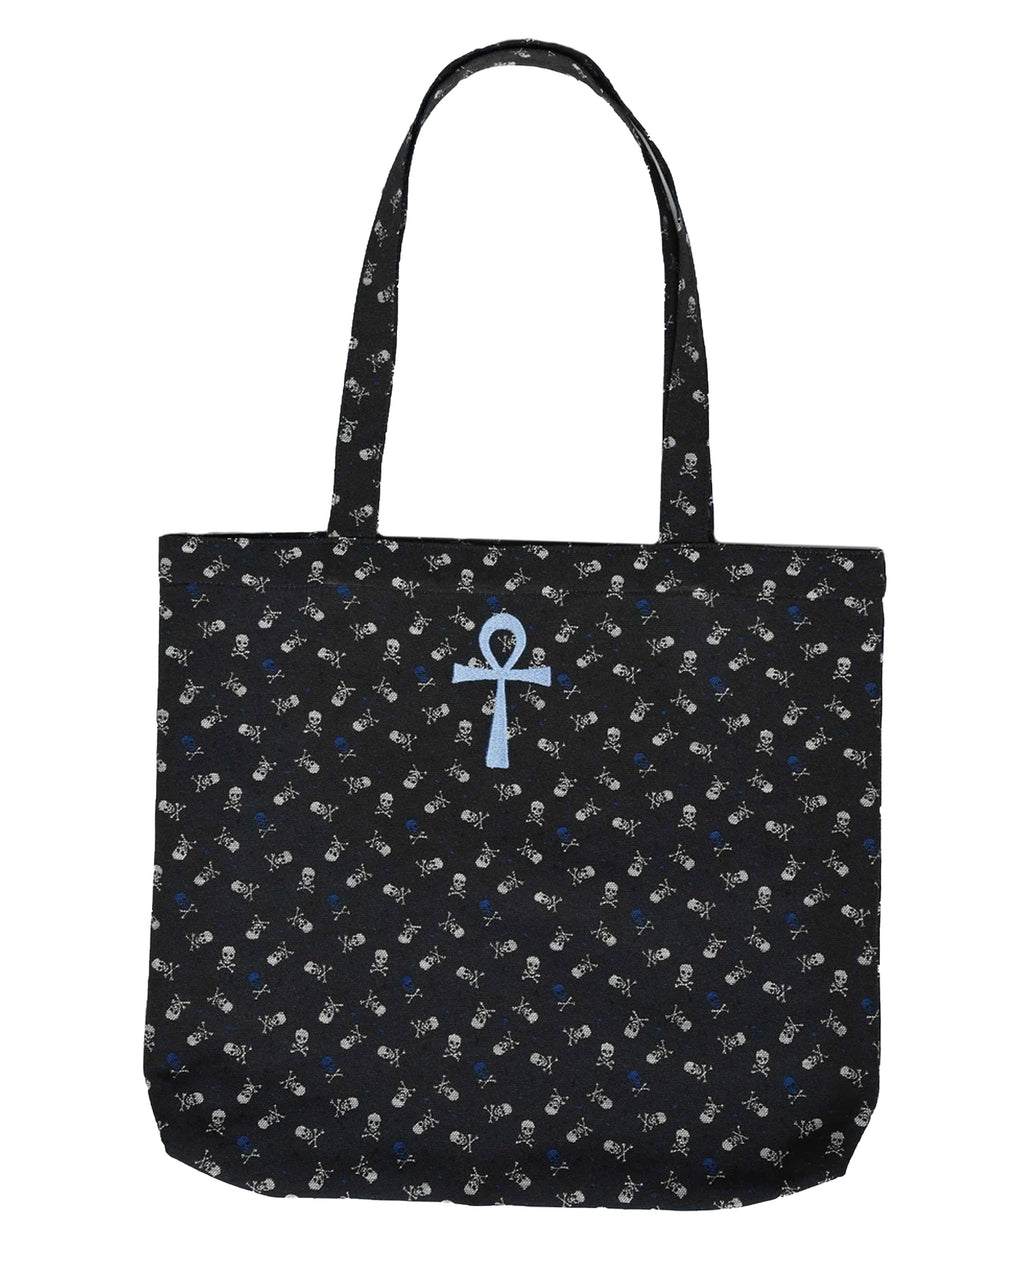 AD10016 - SKULL TOTE BAG - accessories - bags - Crafted from leftover skull fabric into a perfectly sized tote. Featuring a baby blue ankh embroidery - hand embroidered by Nicole herself.